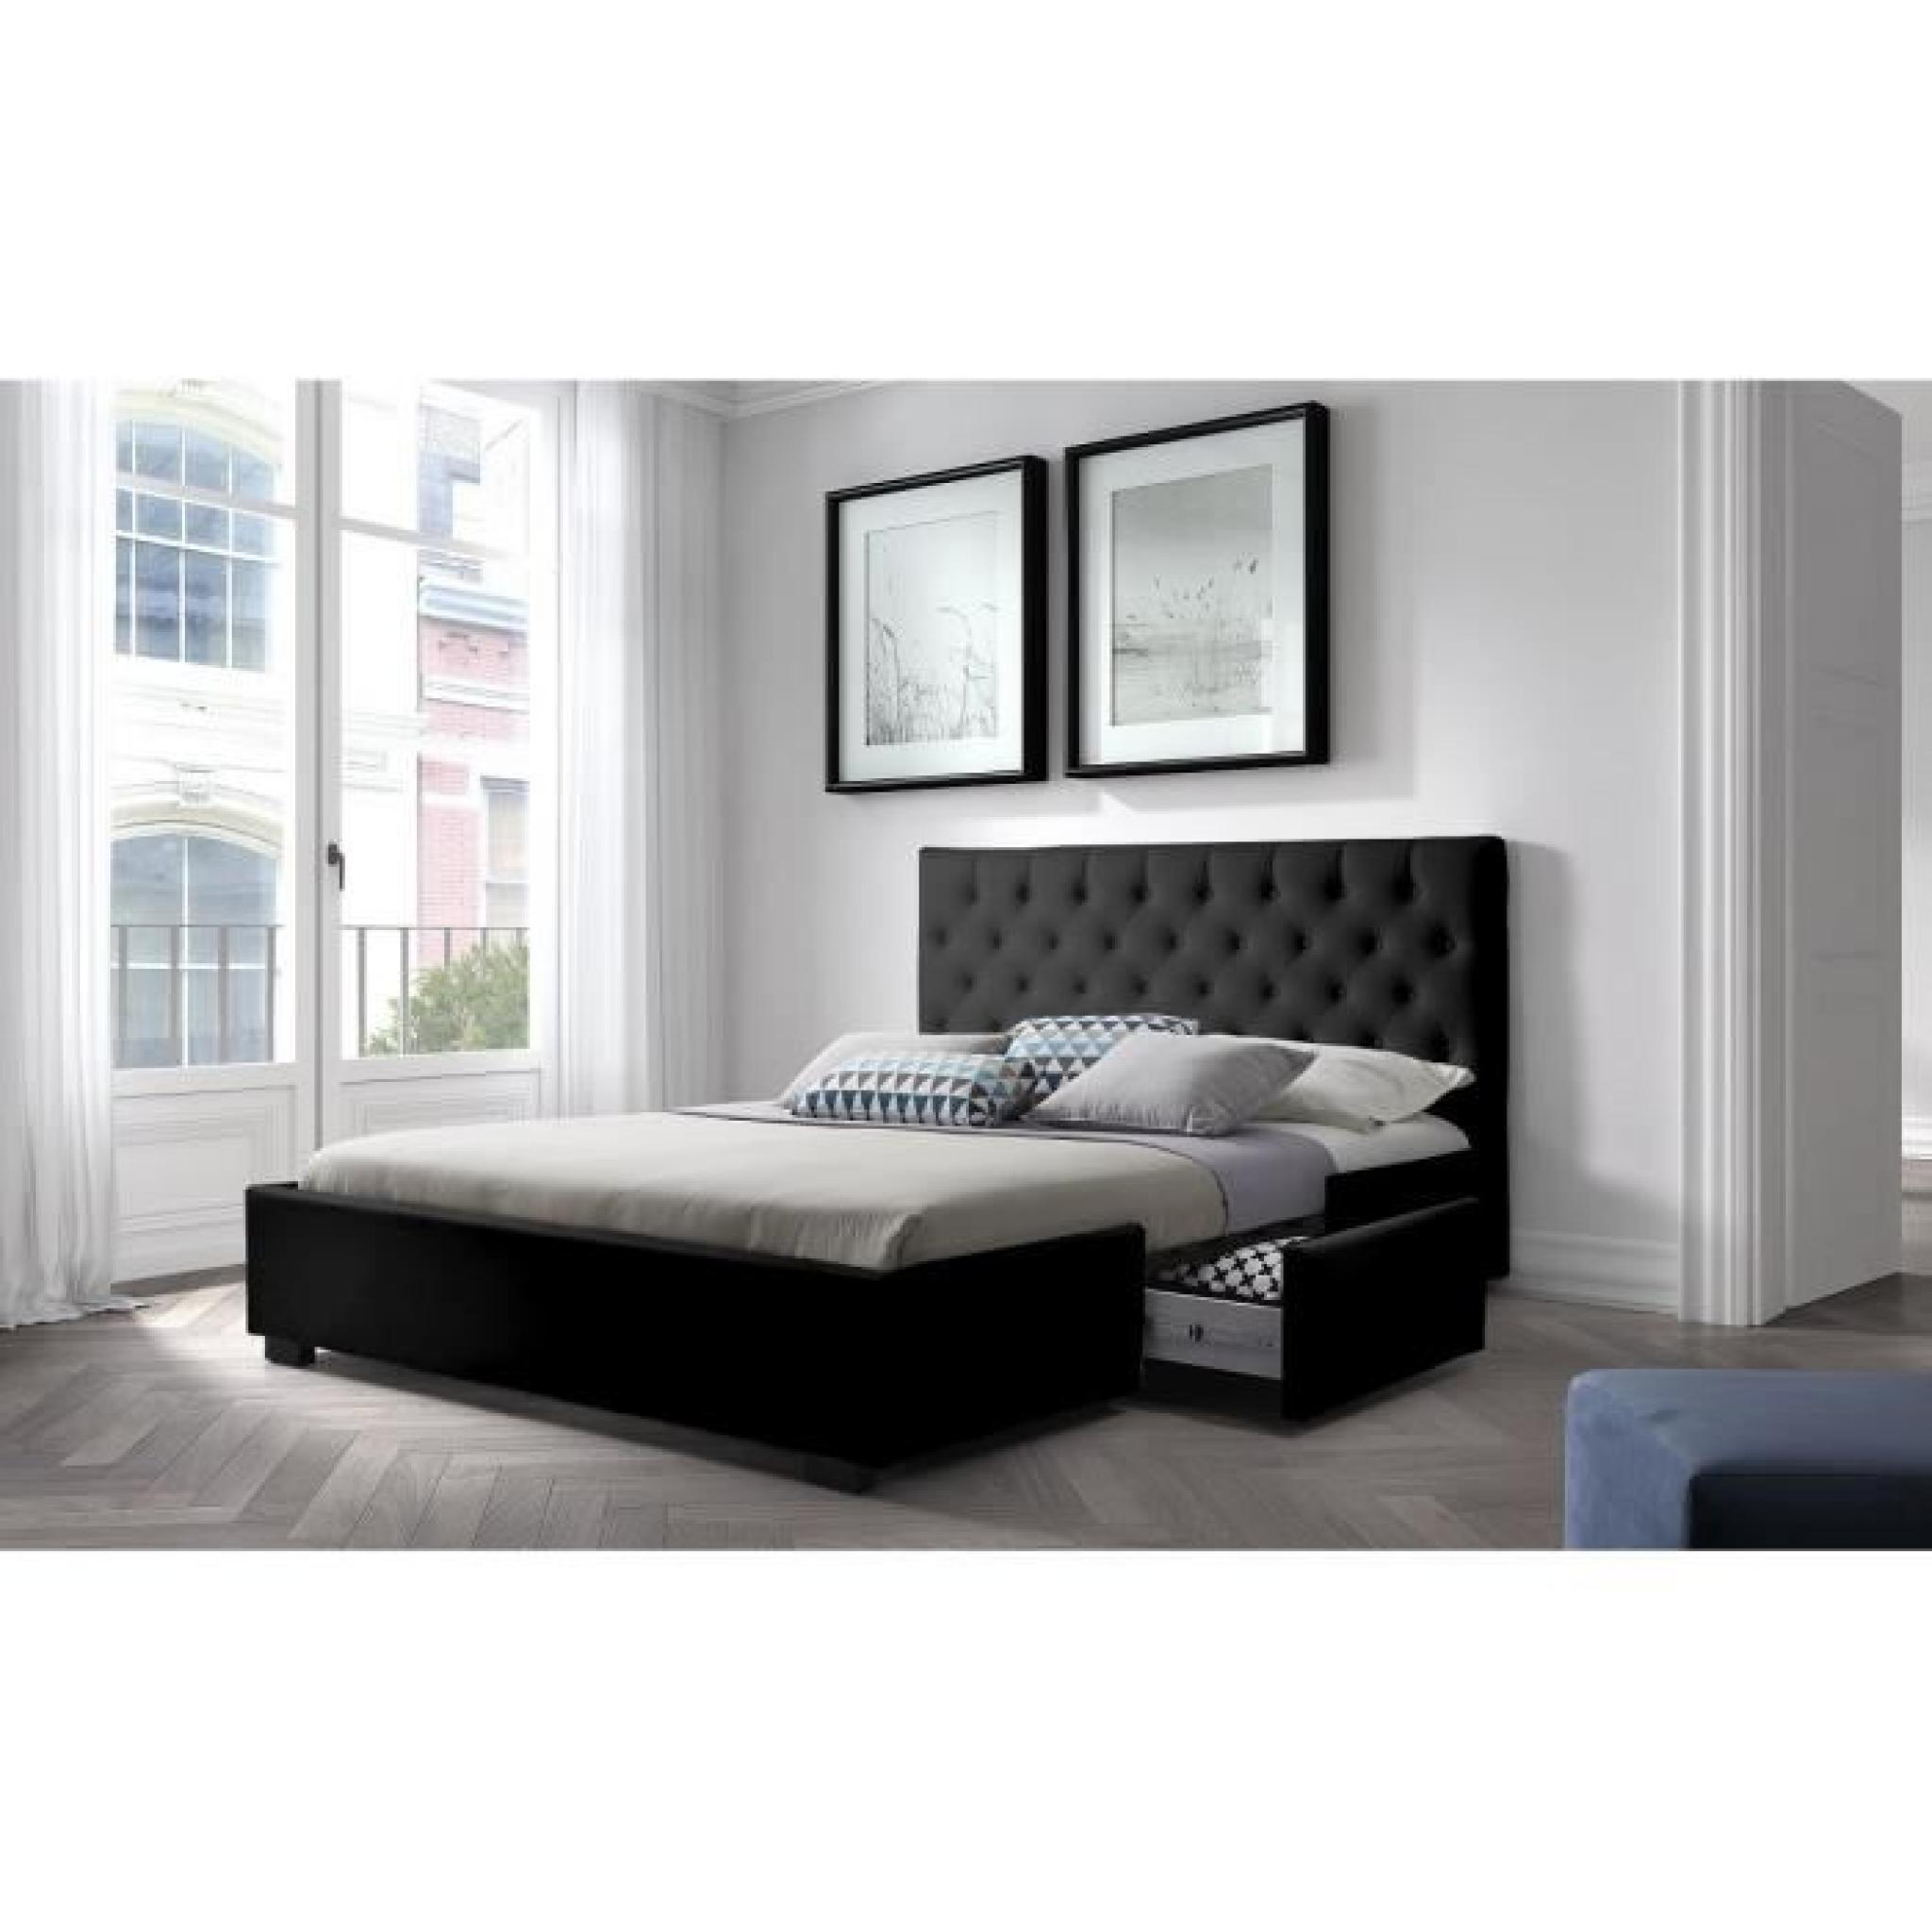 louis structure de lit 180x200 cm sommier 2 tiroirs. Black Bedroom Furniture Sets. Home Design Ideas